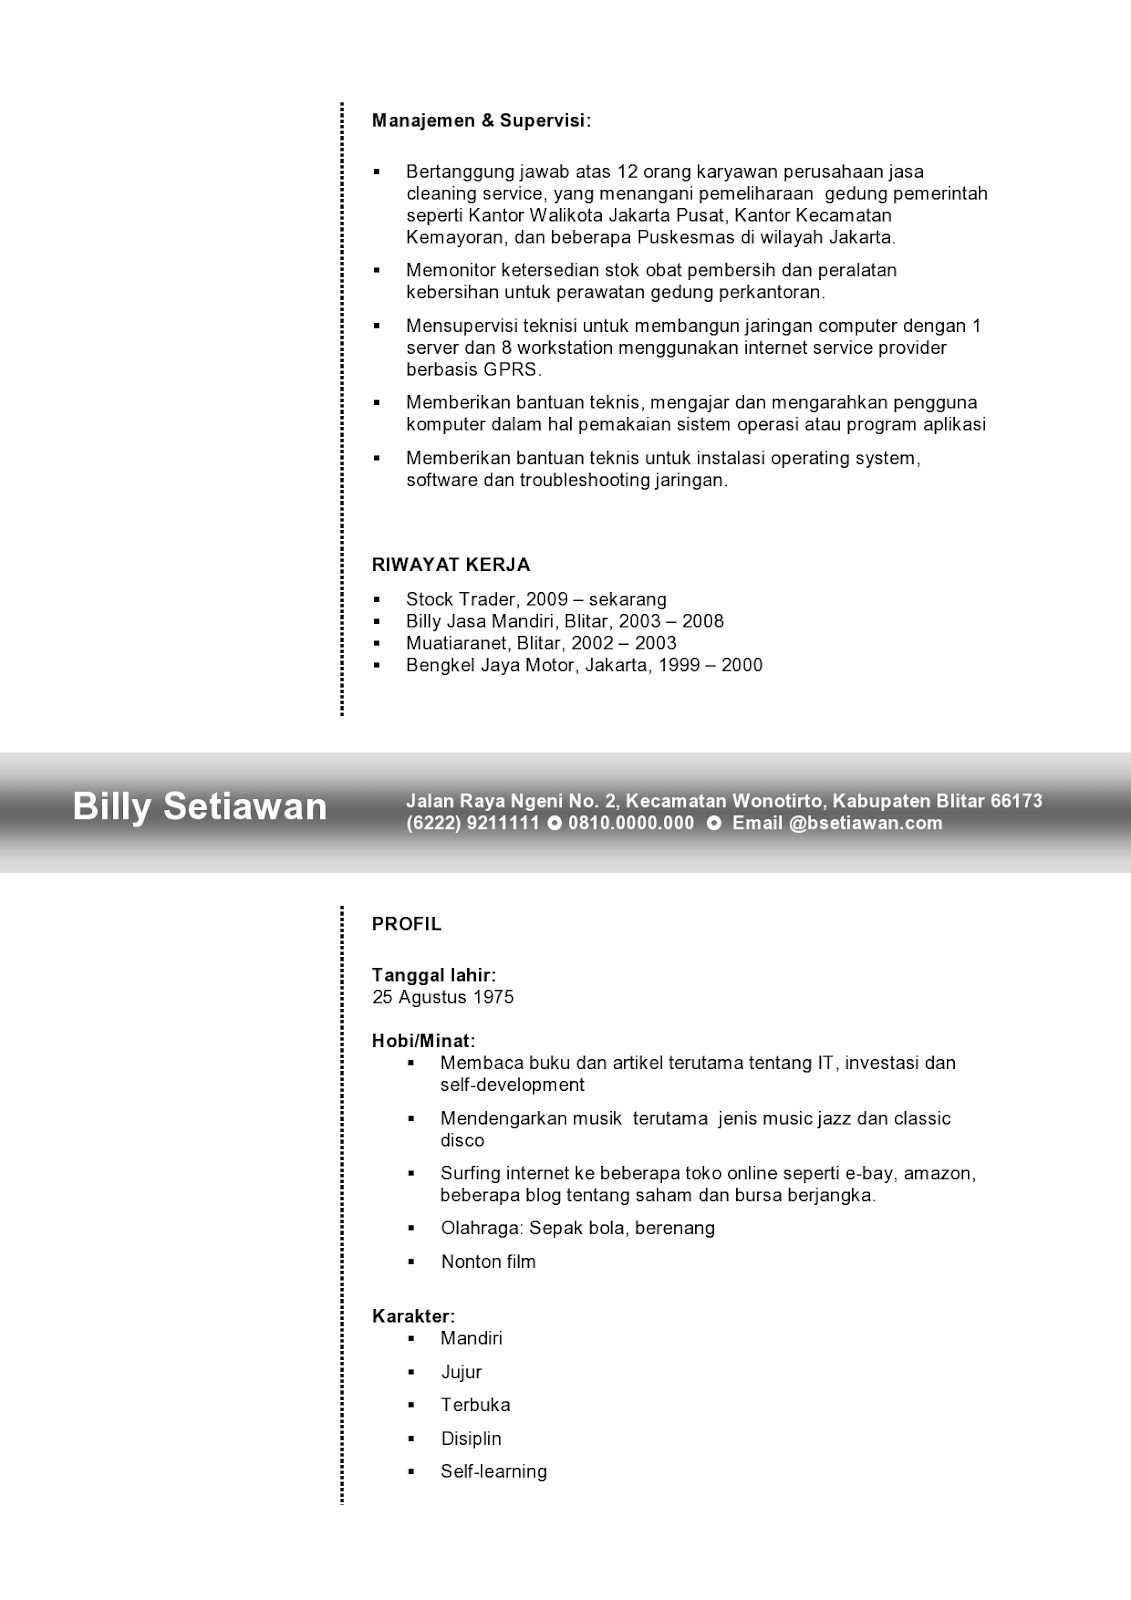 Java Programmer Fresher Resume. resume cover letter resume value ...